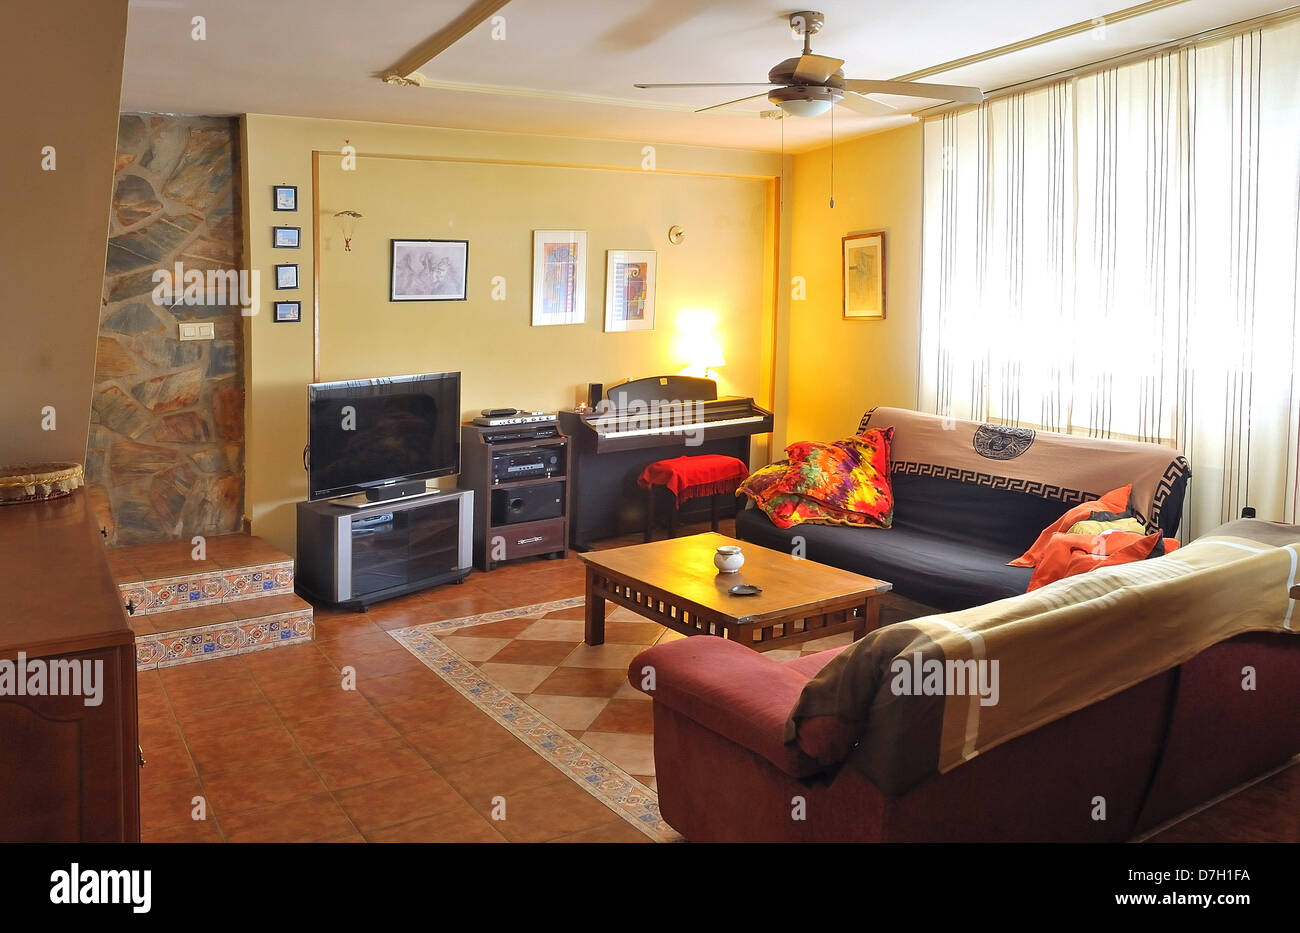 Rustic Living Room With Tv Piano And Home Theater Stock Photo Alamy